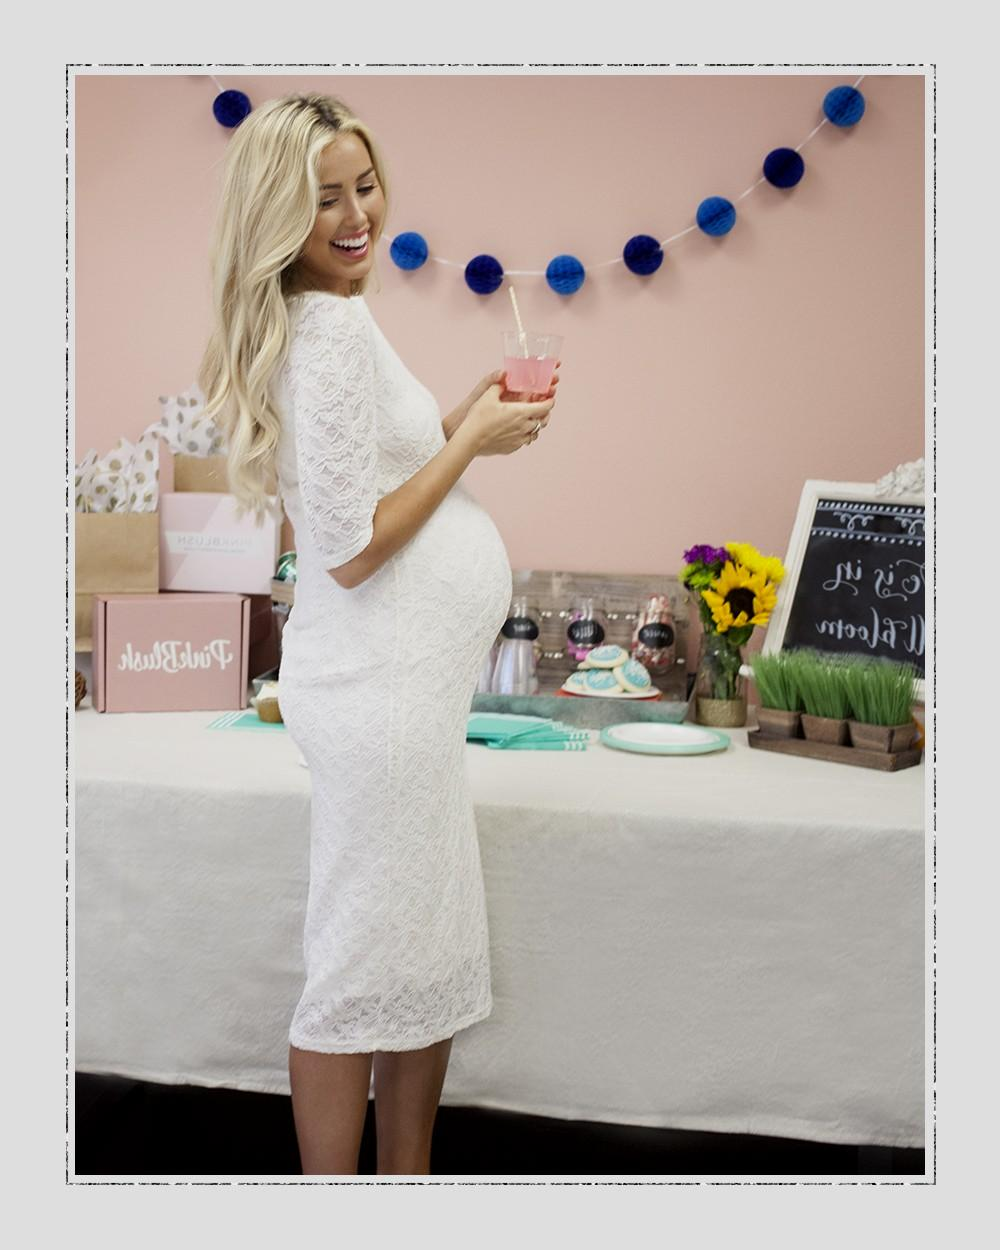 Full Size of Baby Shower:trendy Maternity Clothes Affordable Maternity Clothes Baby Shower Outfit For Mom Winter Maternity Evening Gowns Cute Baby Shower Outfits For Mom Maternity Maxi Dresses Maternity Dresses Maternity Gown Style